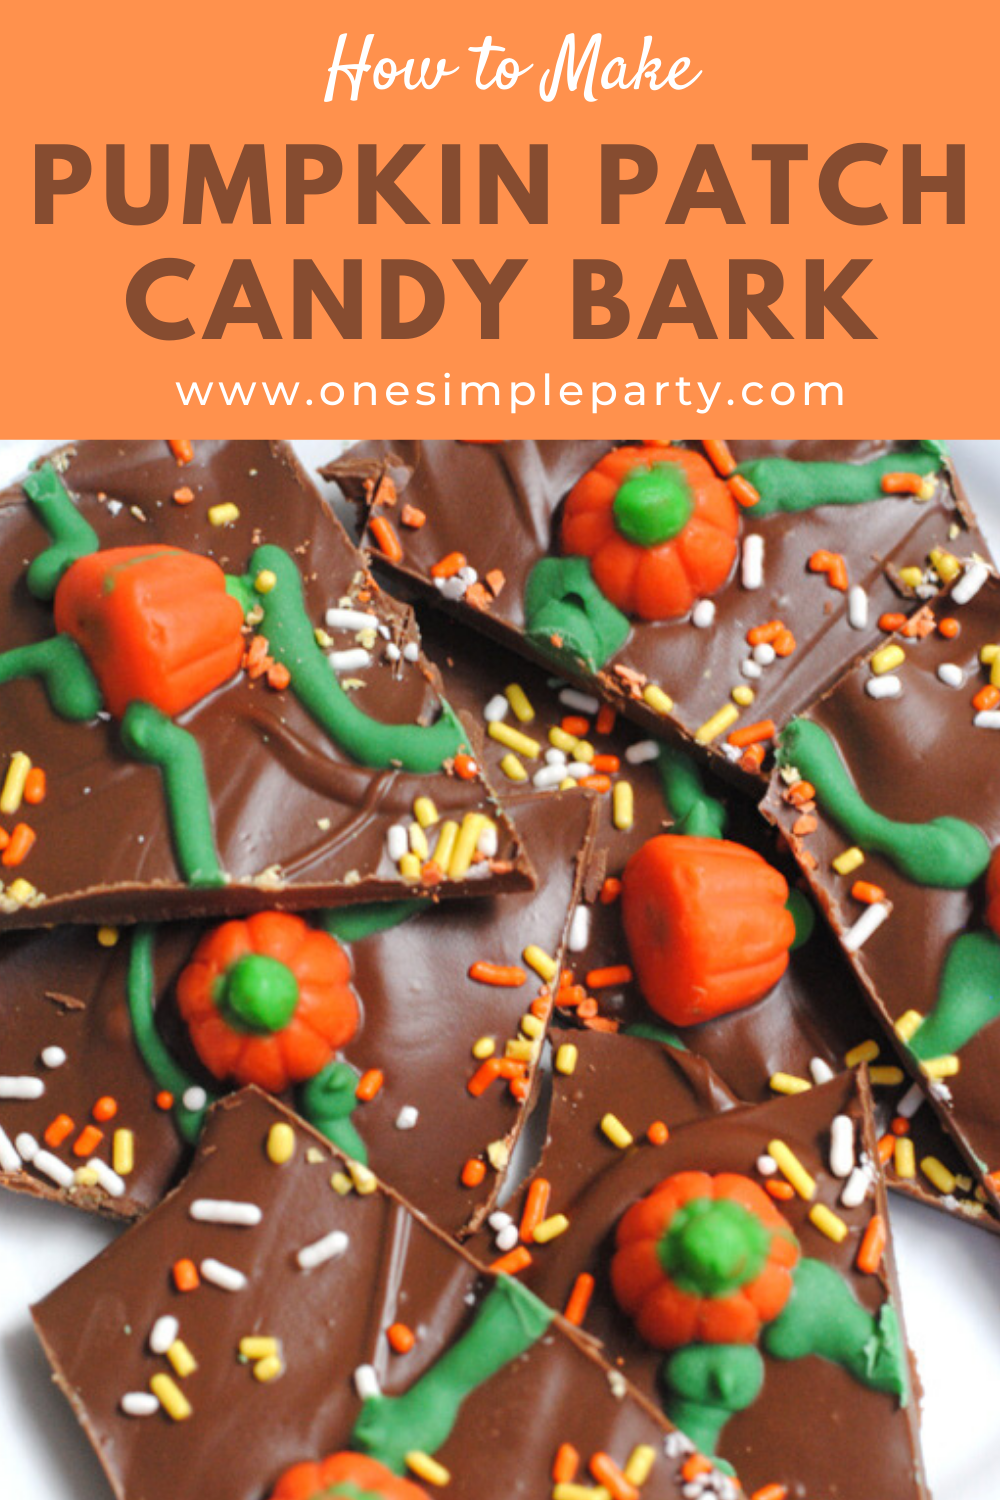 Pumpkin Patch Candy Bark ONE SIMPLE PARTY in 2020